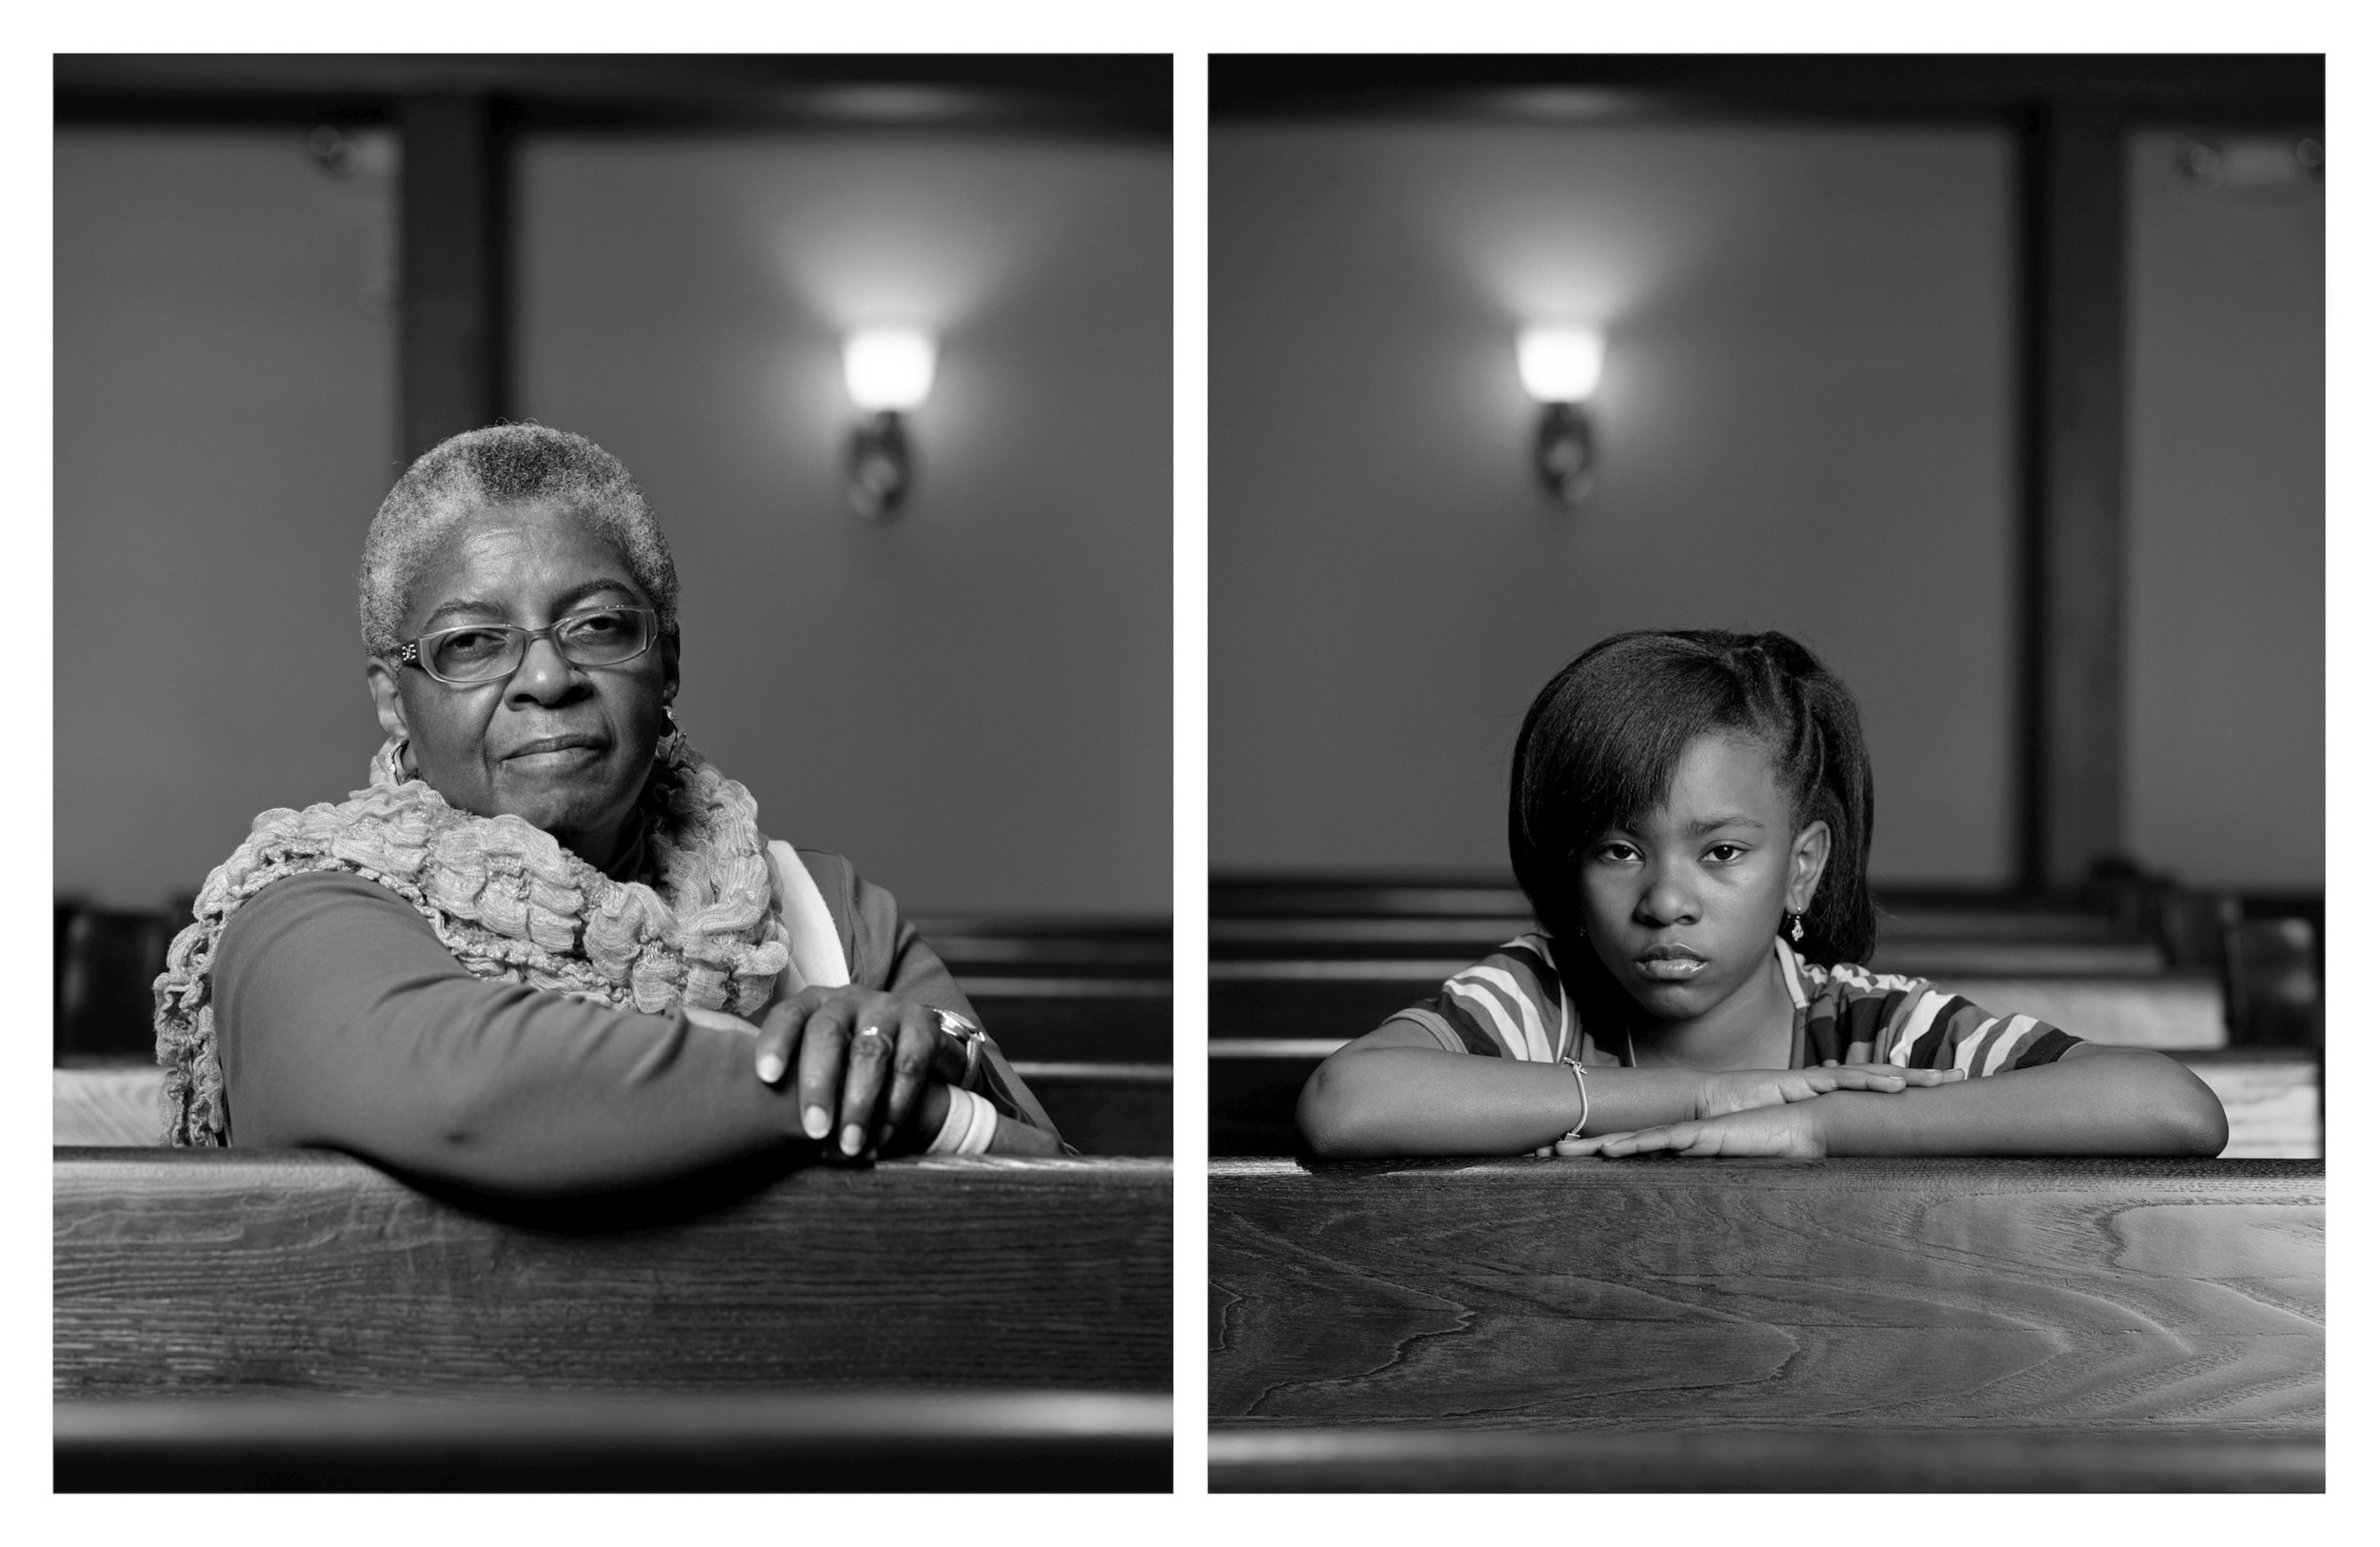 Mary Parker and Caela Cowan, 2012 Archival pigment prints mounted on dibond  40 x 64 inches (two separate 40 x 32 inch photographs) Edition of 6 + 2 APs Copyright © Dawoud Bey